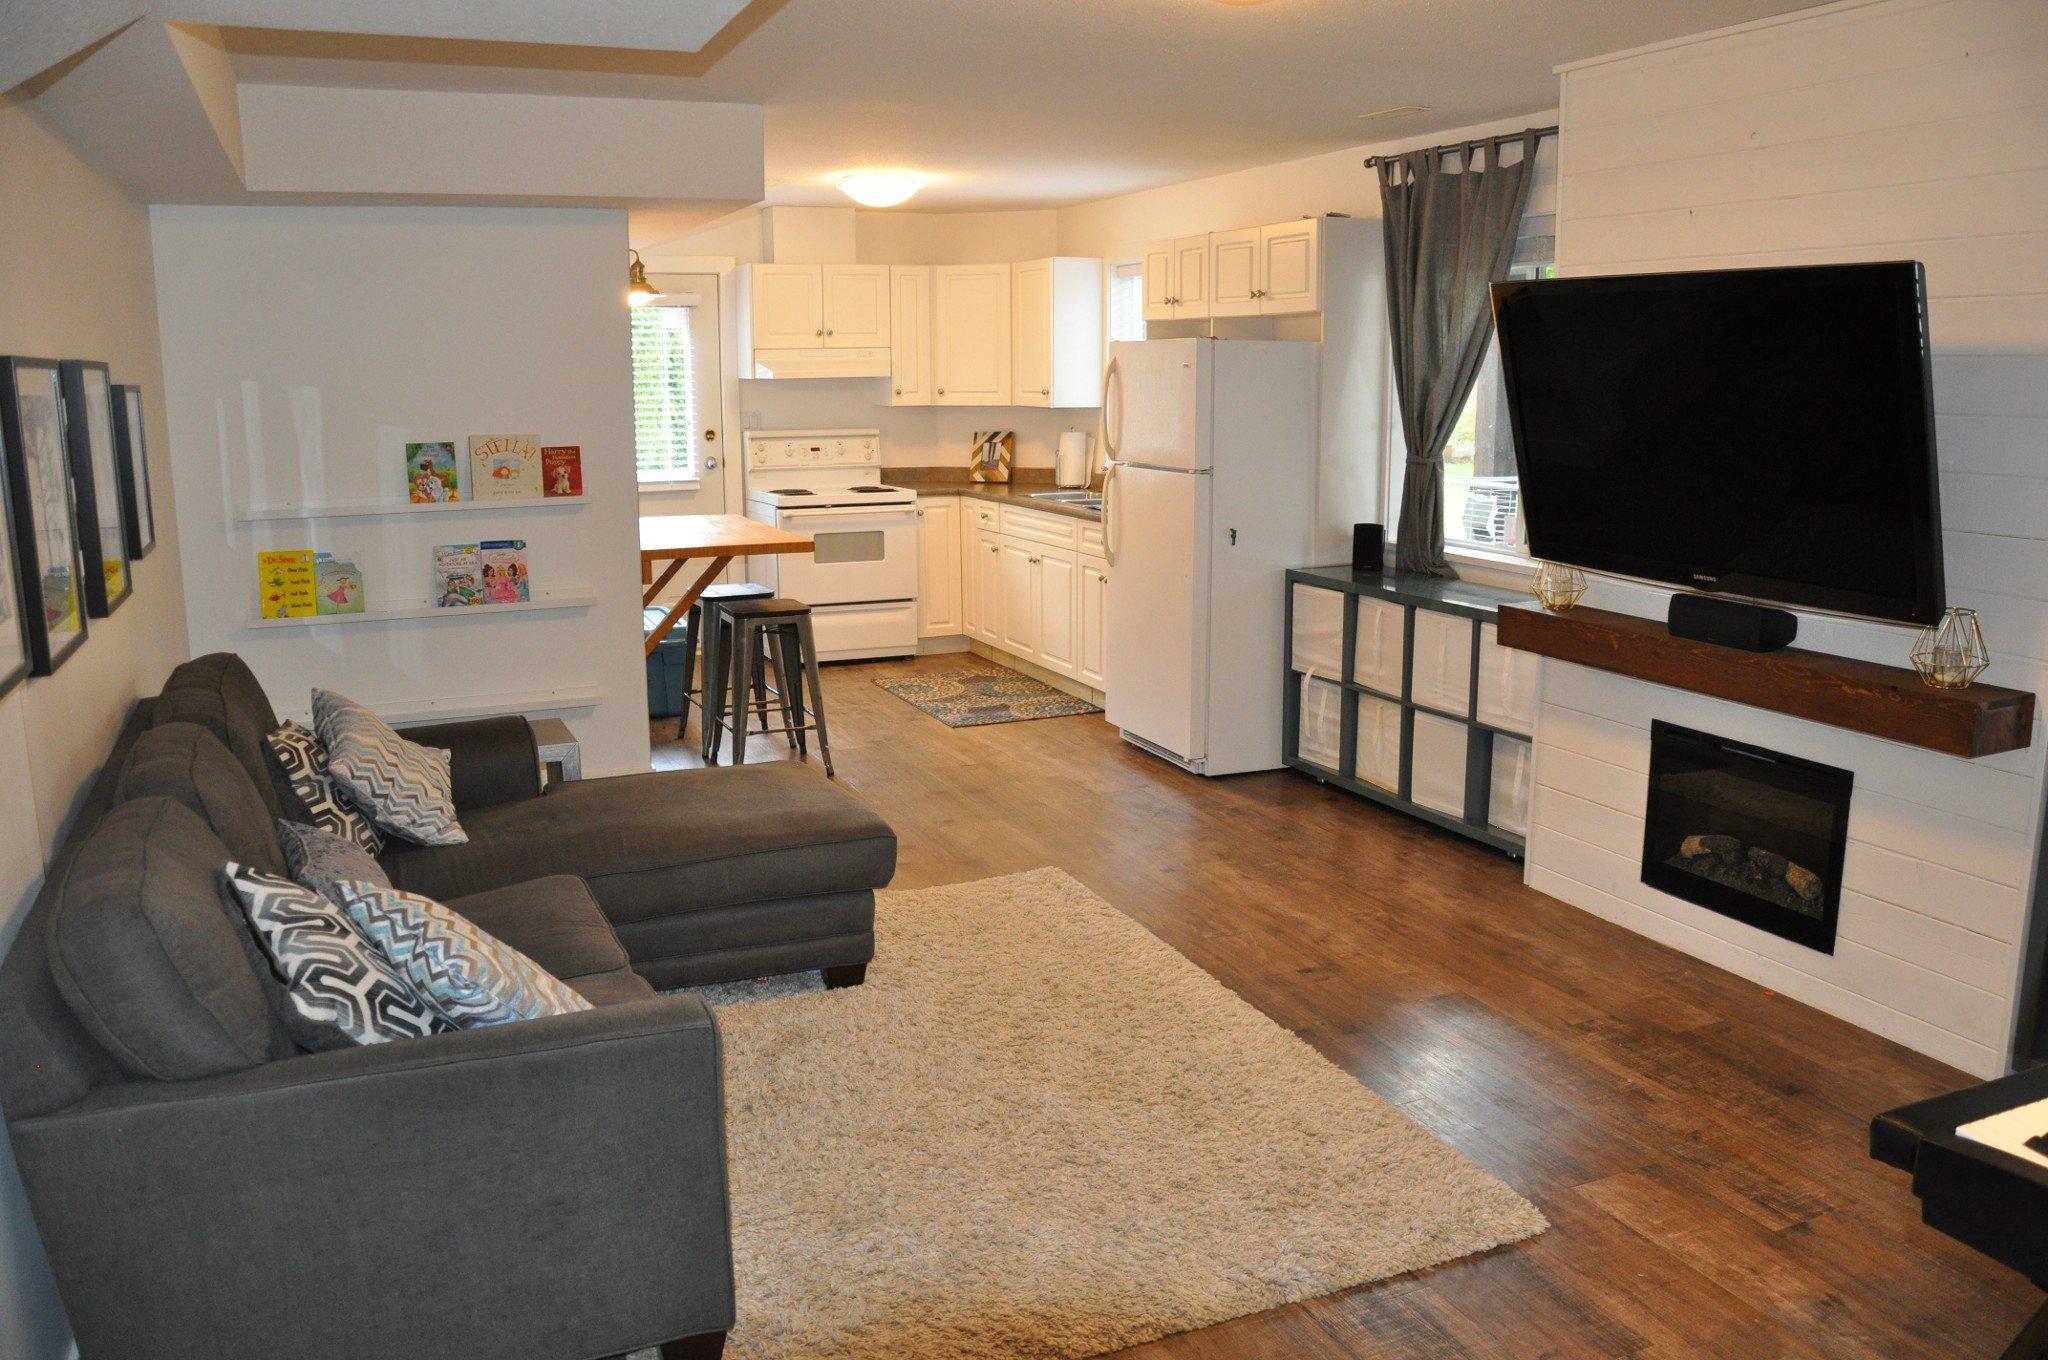 Photo 15: Photos: 4076 Channel St. in Abbotsford: Abbotsford East House for rent